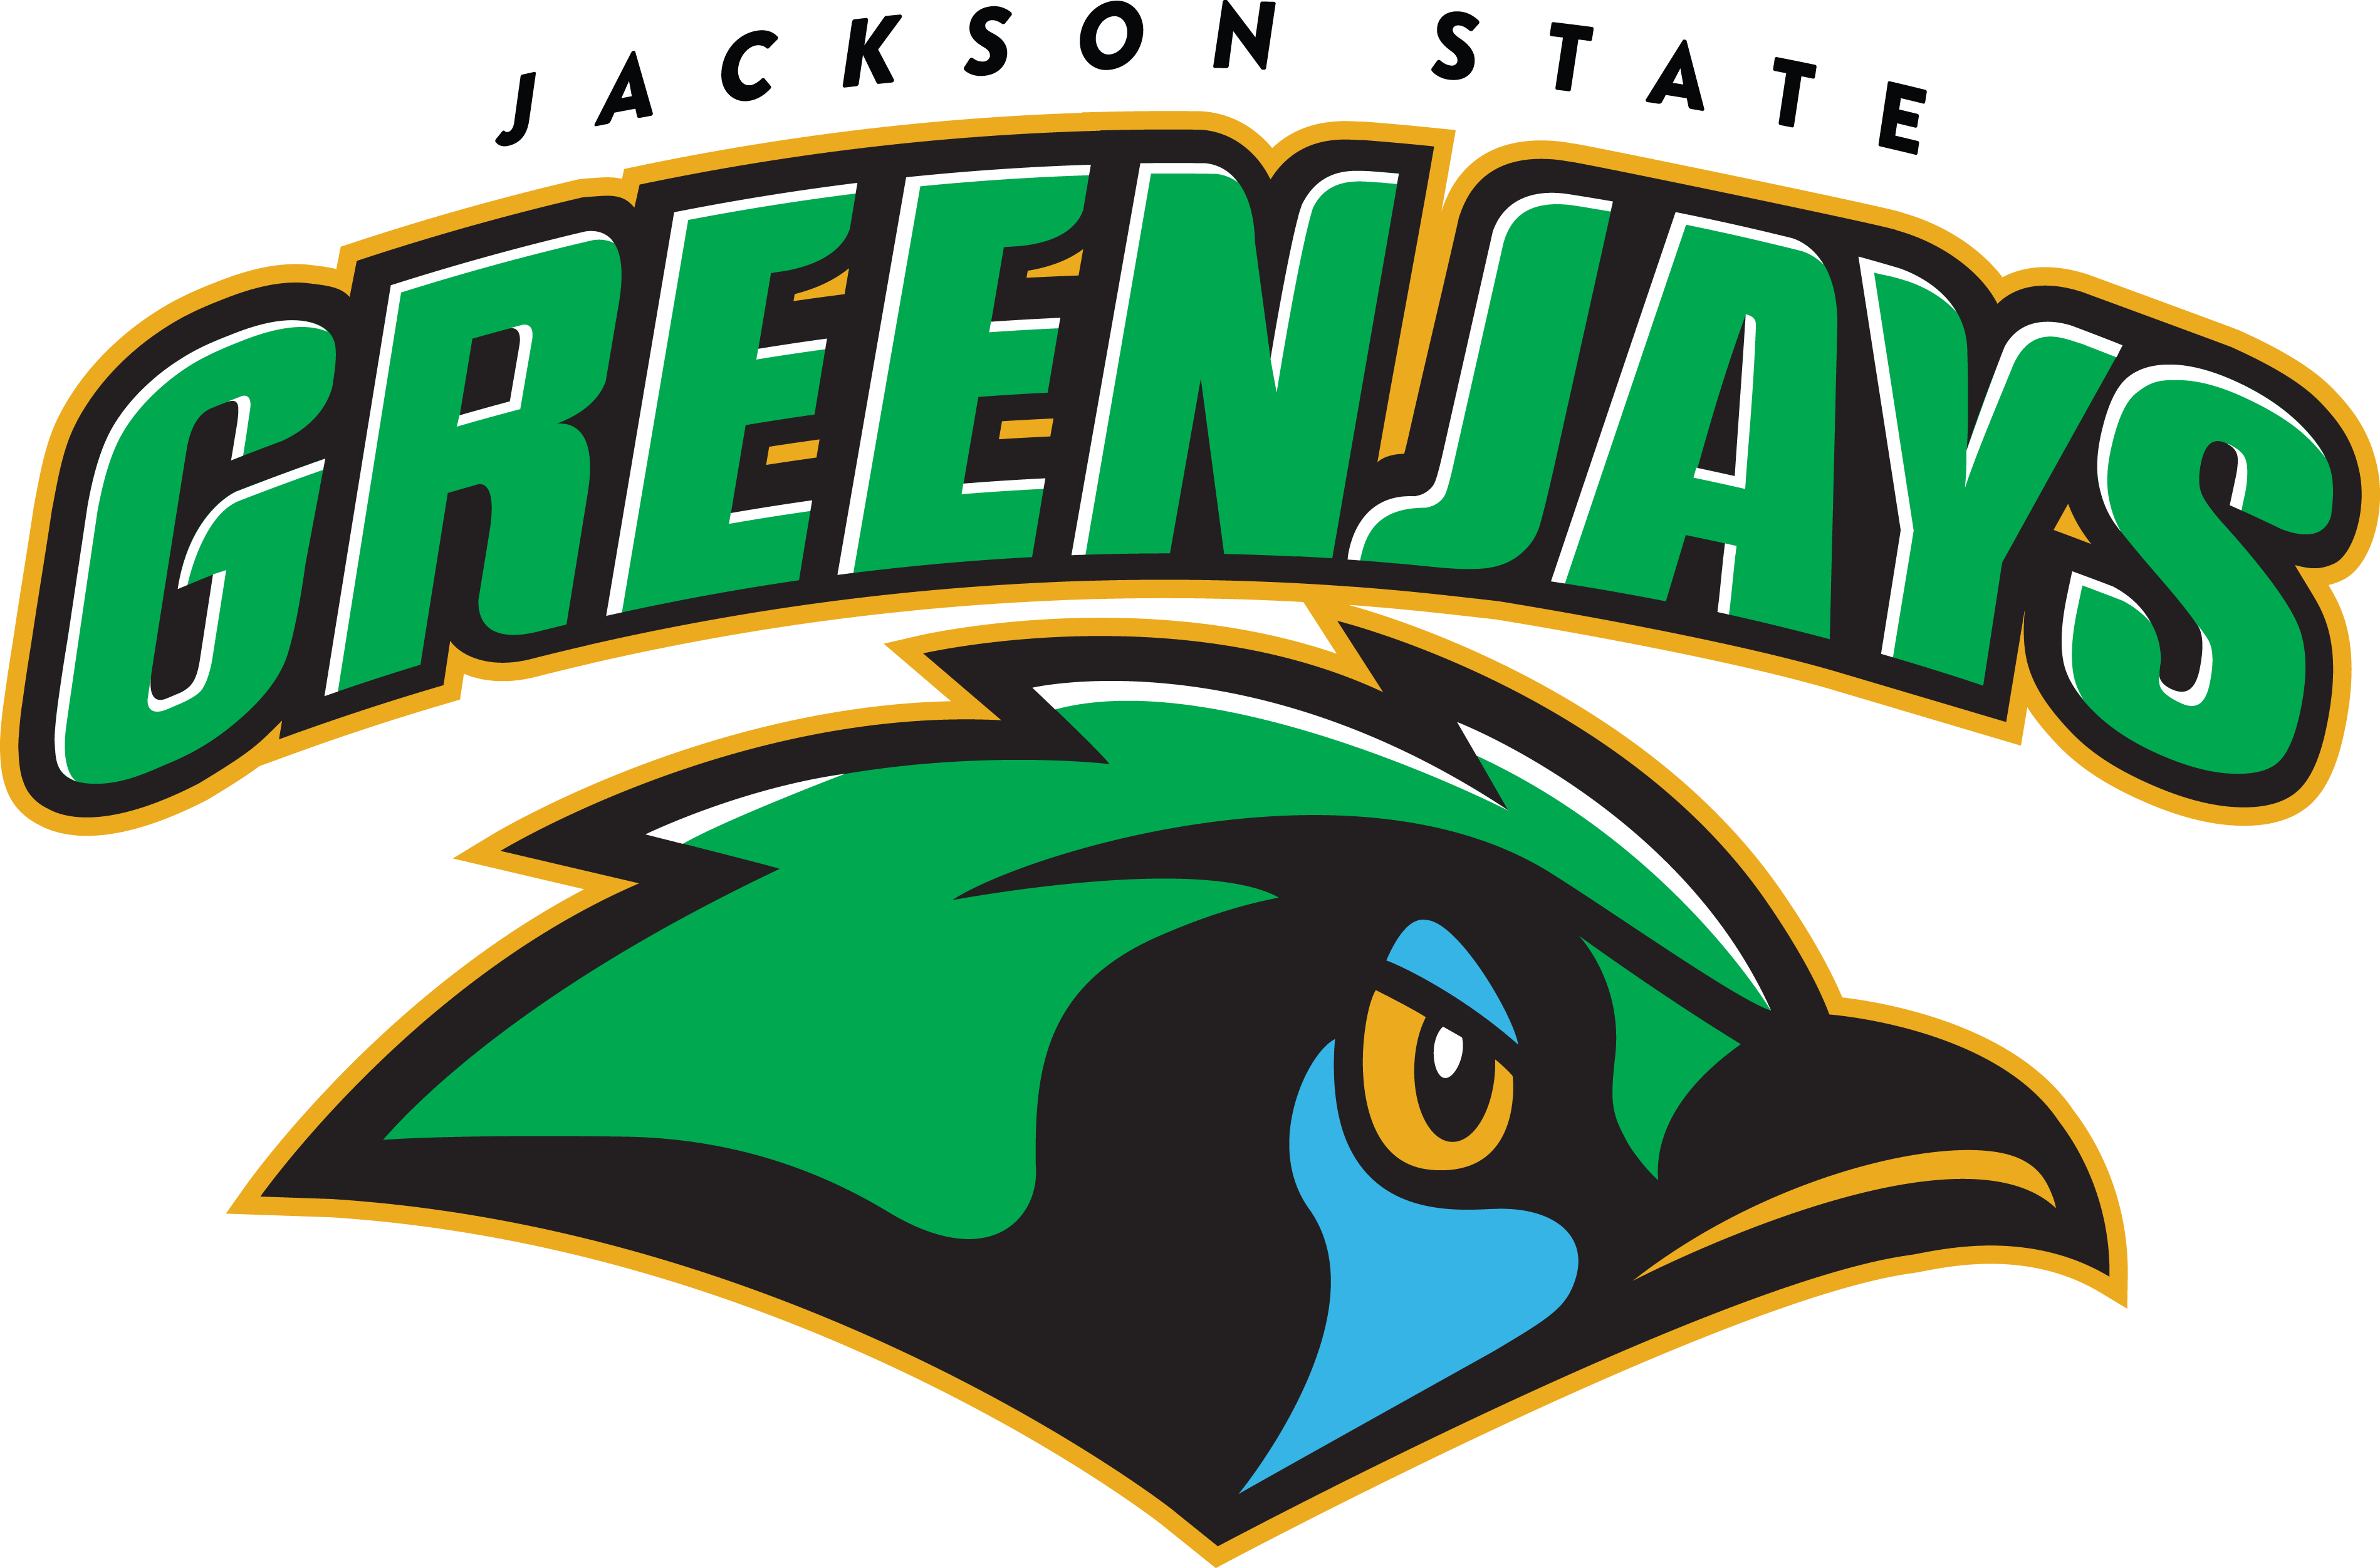 Greenjays logo